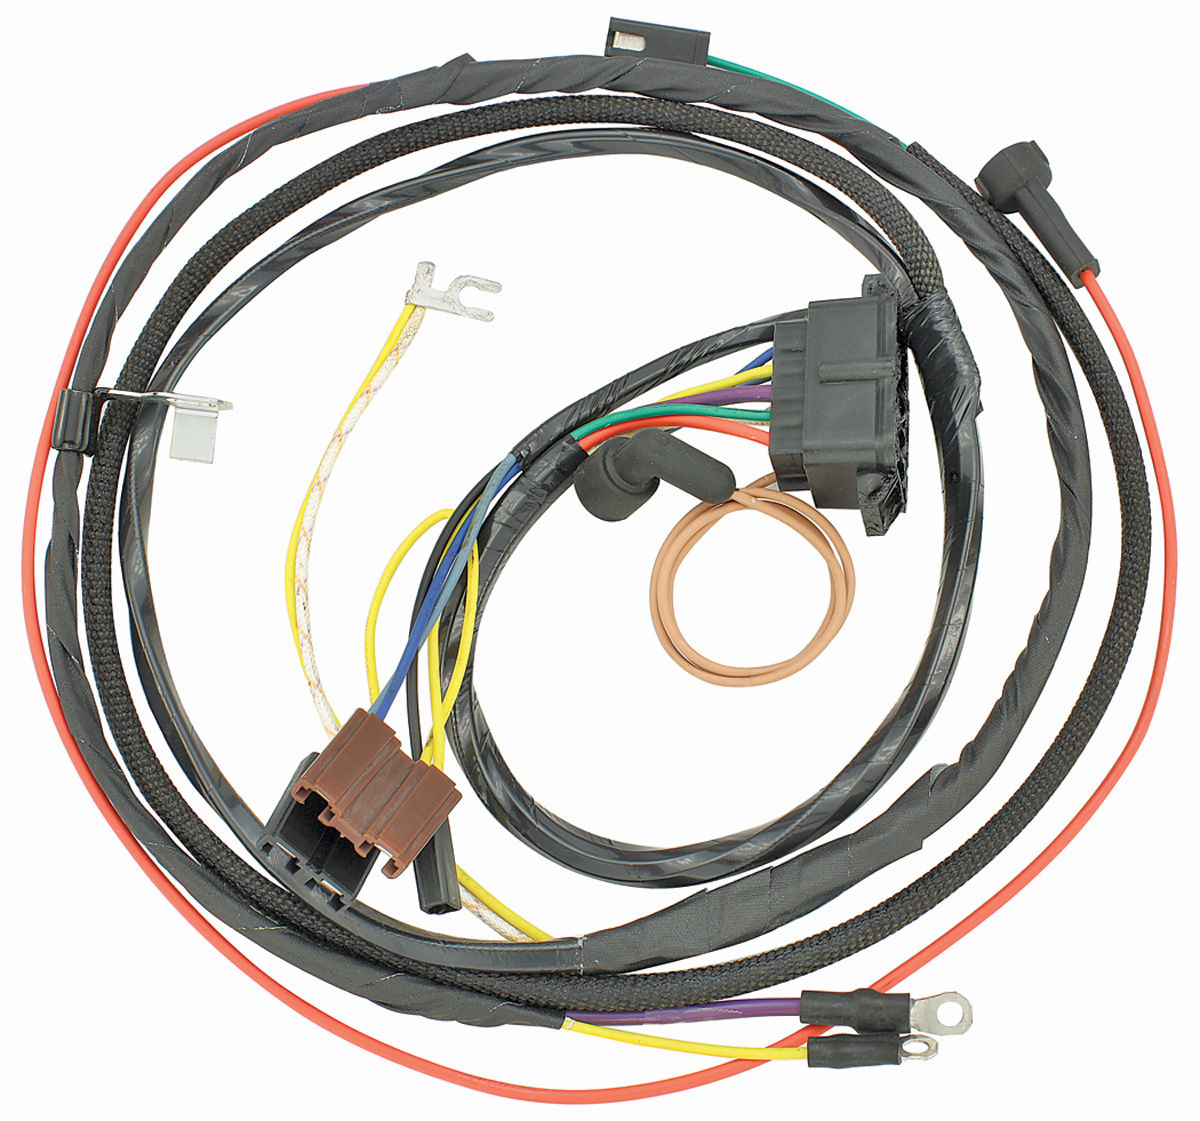 1972 Chevelle Engine Wiring Harness Diagram Data 1970 Nova 67 Ss Dash Blog Fuse Block